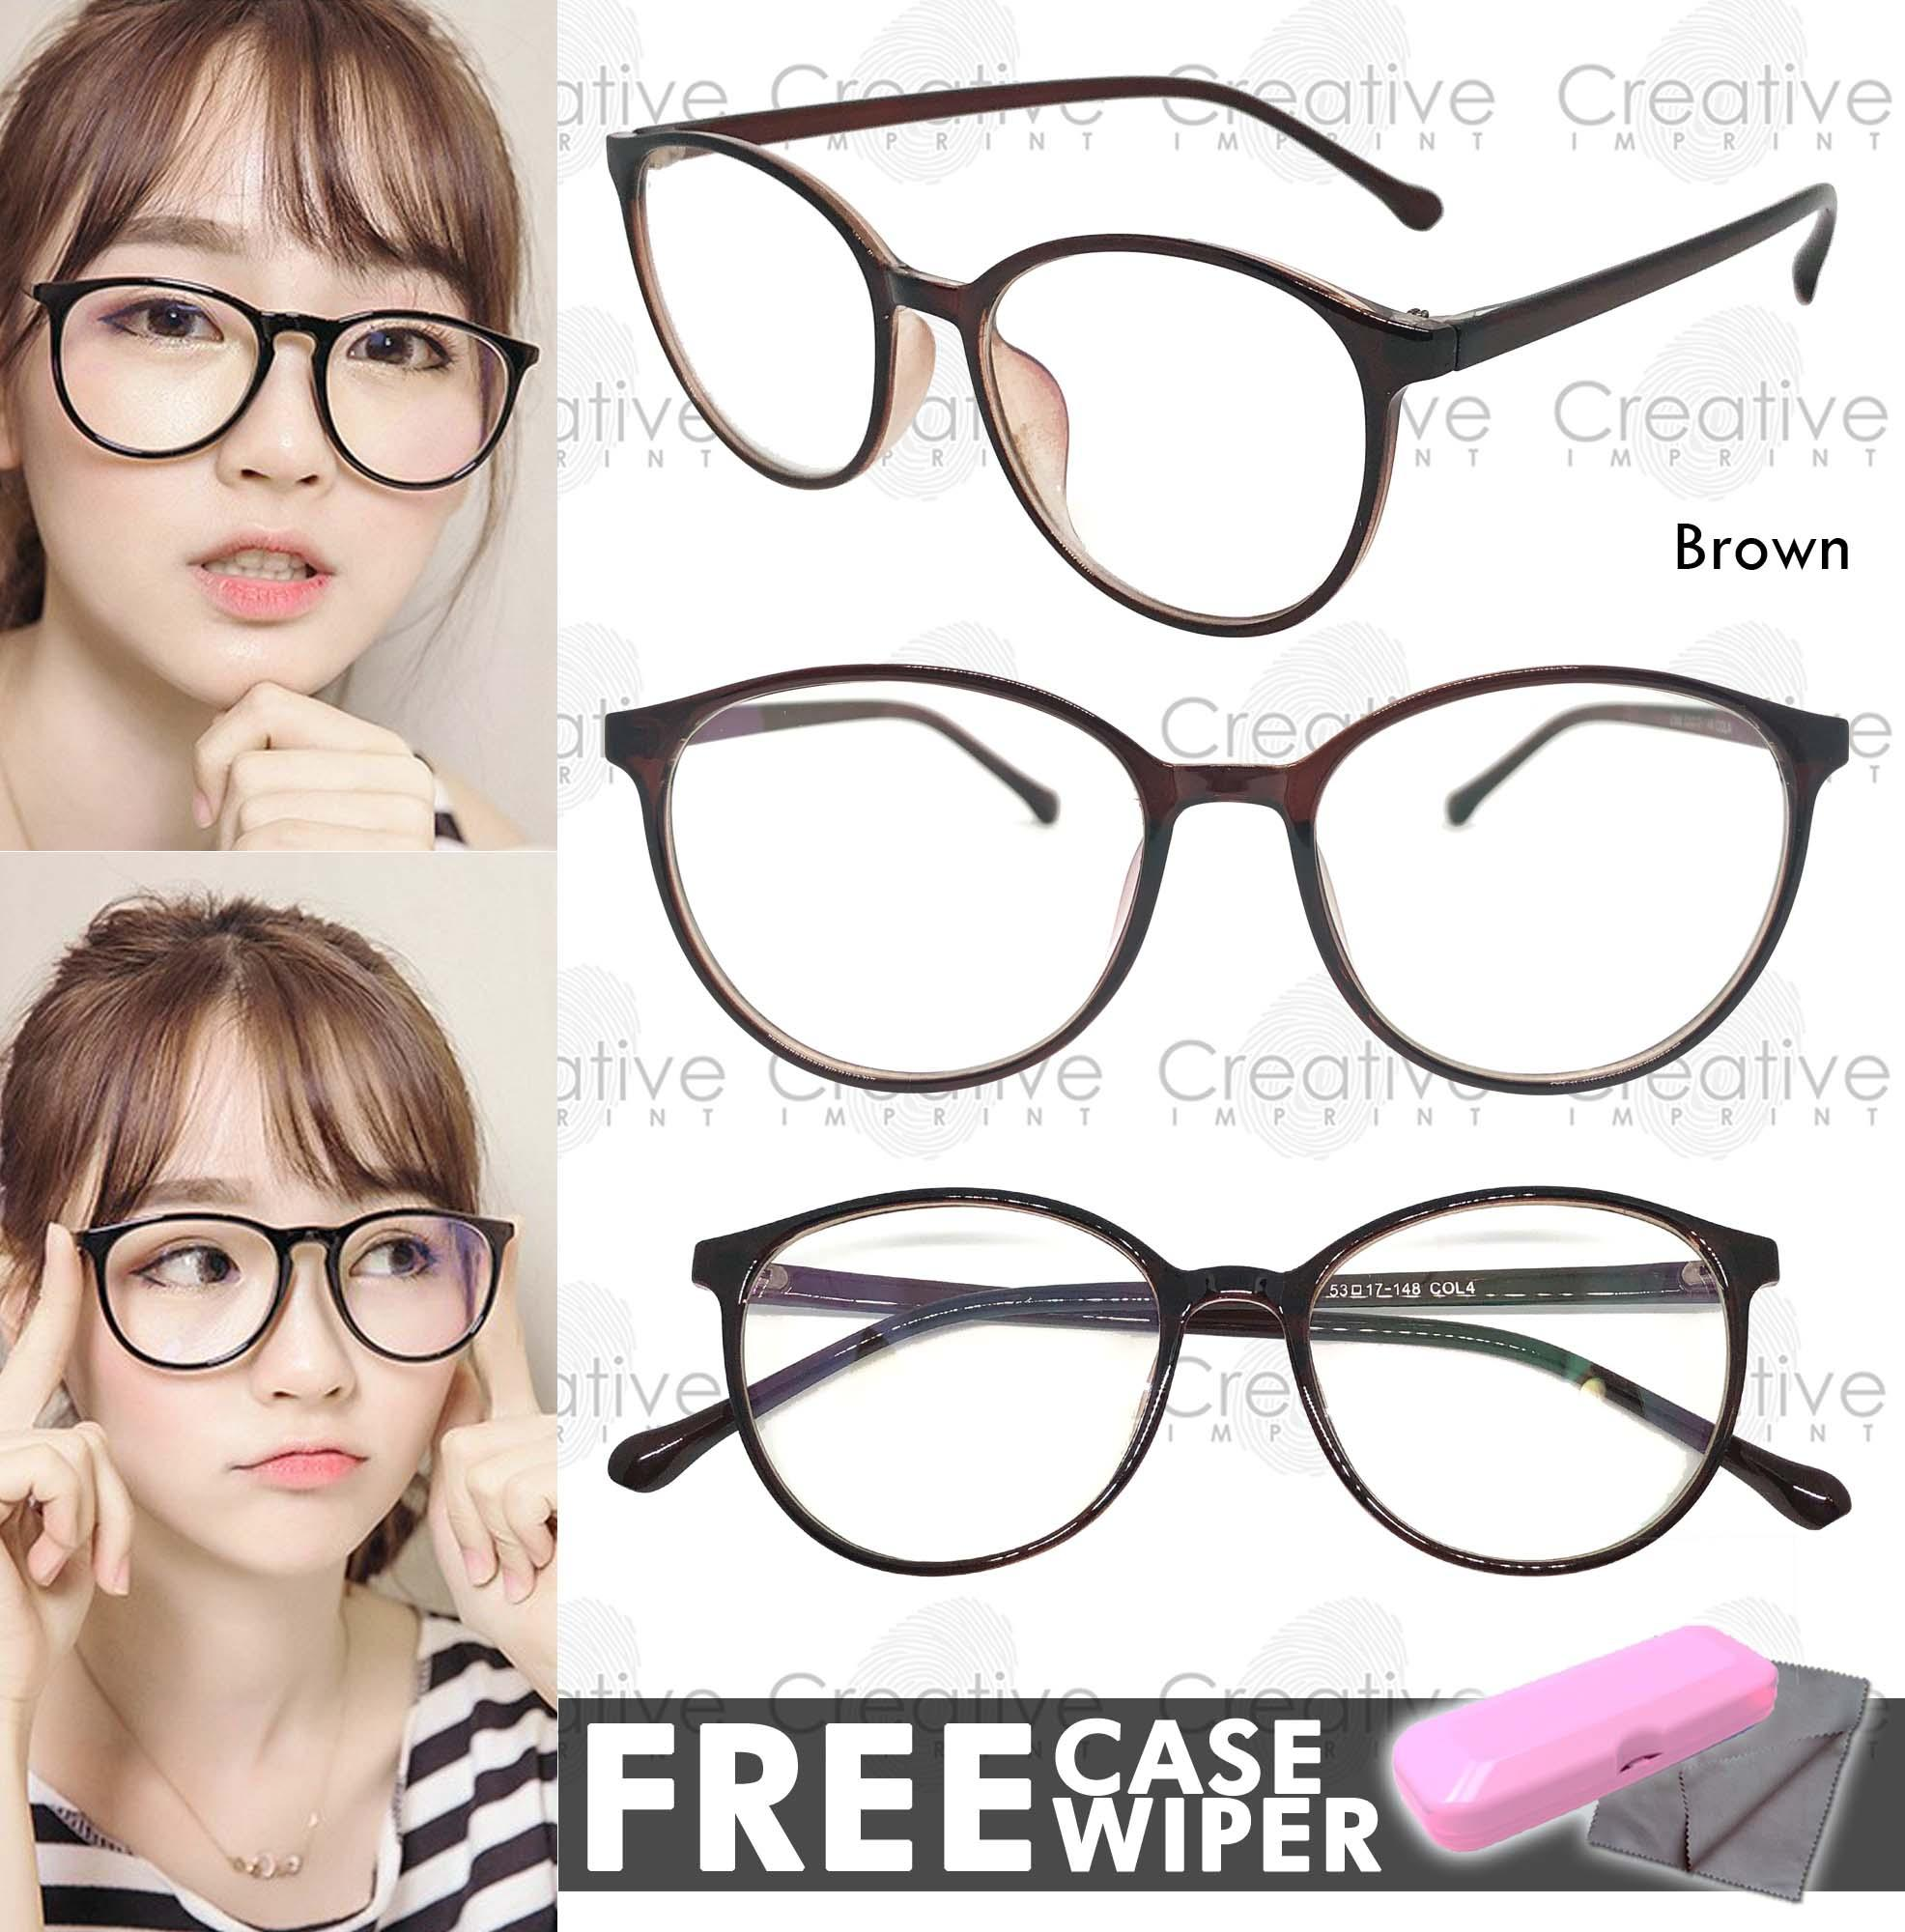 674568d155 Creative Imprint Eyeglasses Anti-Radiation Lens ( 05 Brown) Anti-Fatigue  Anti